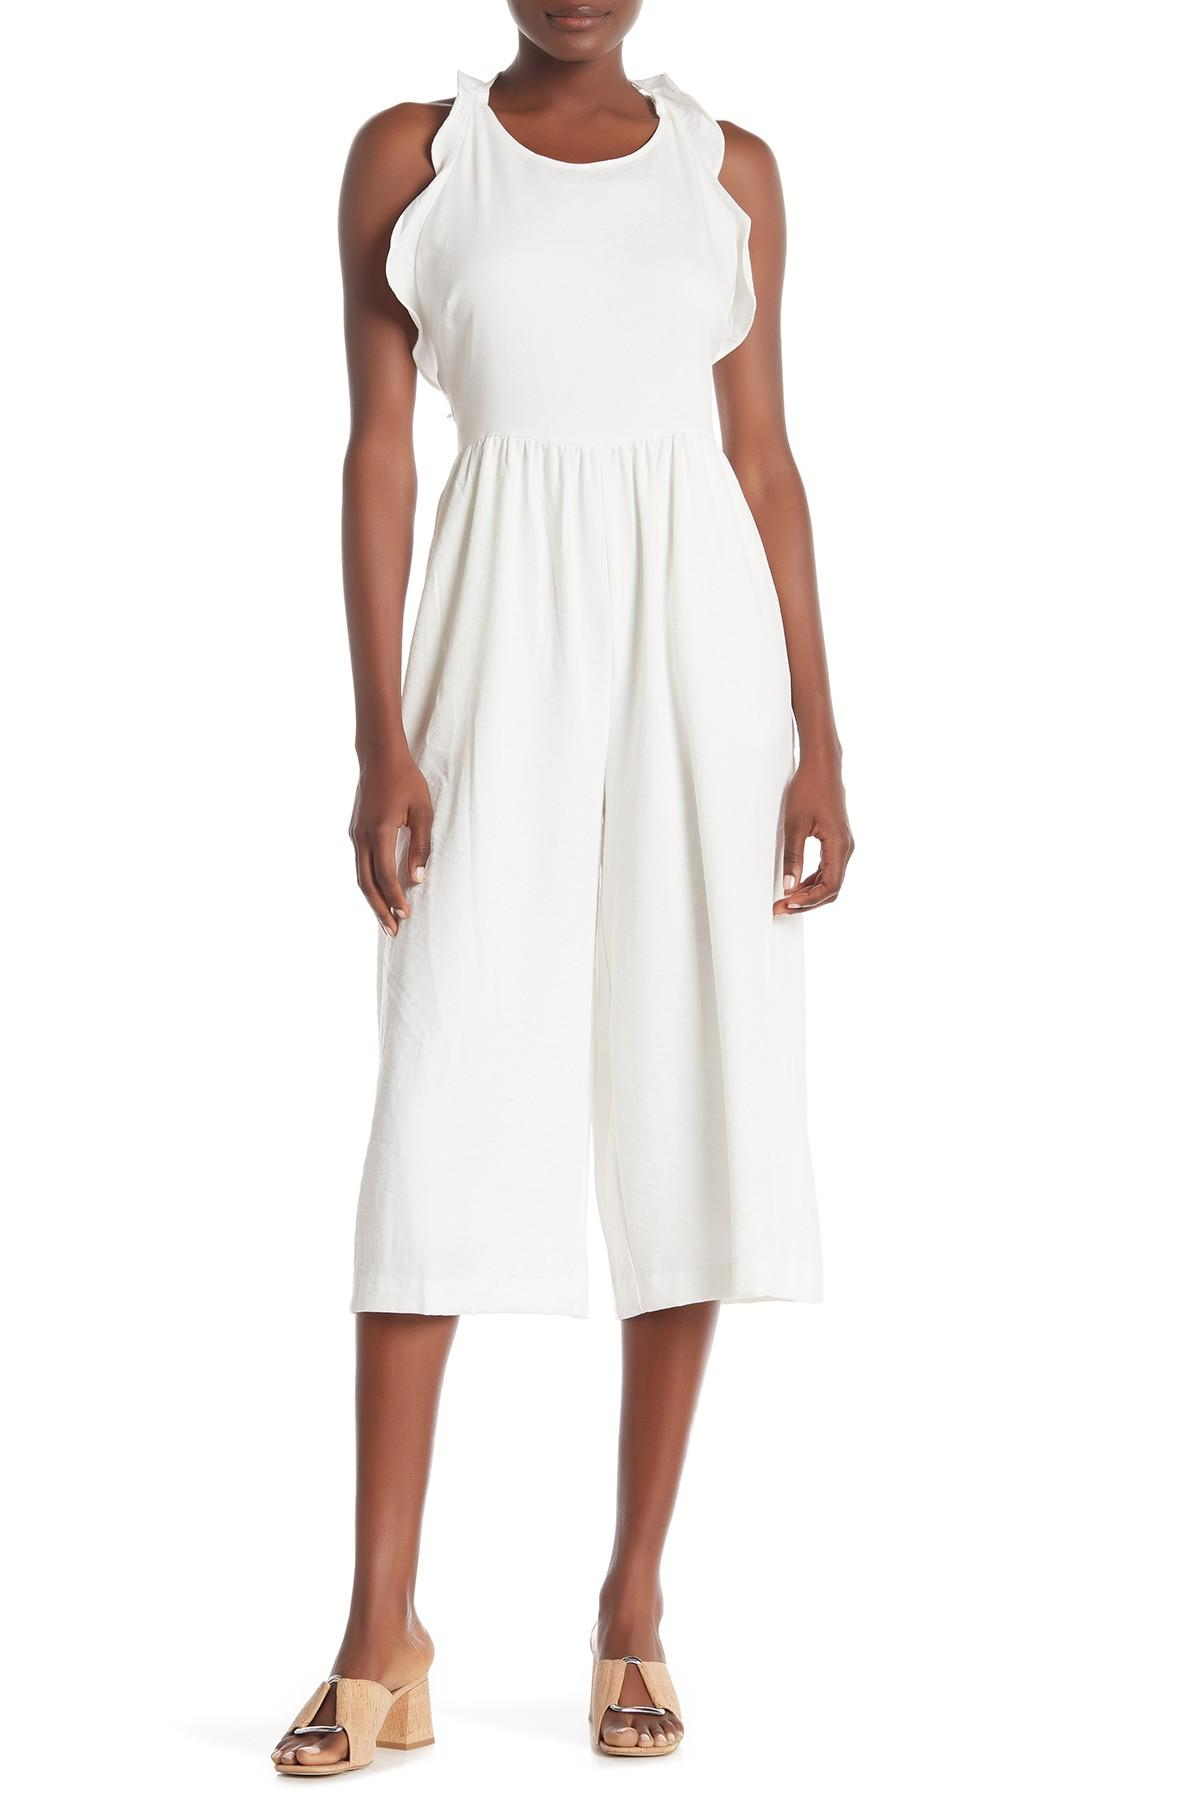 7477c97ae Nordstrom Rack Black And White Jumpsuit